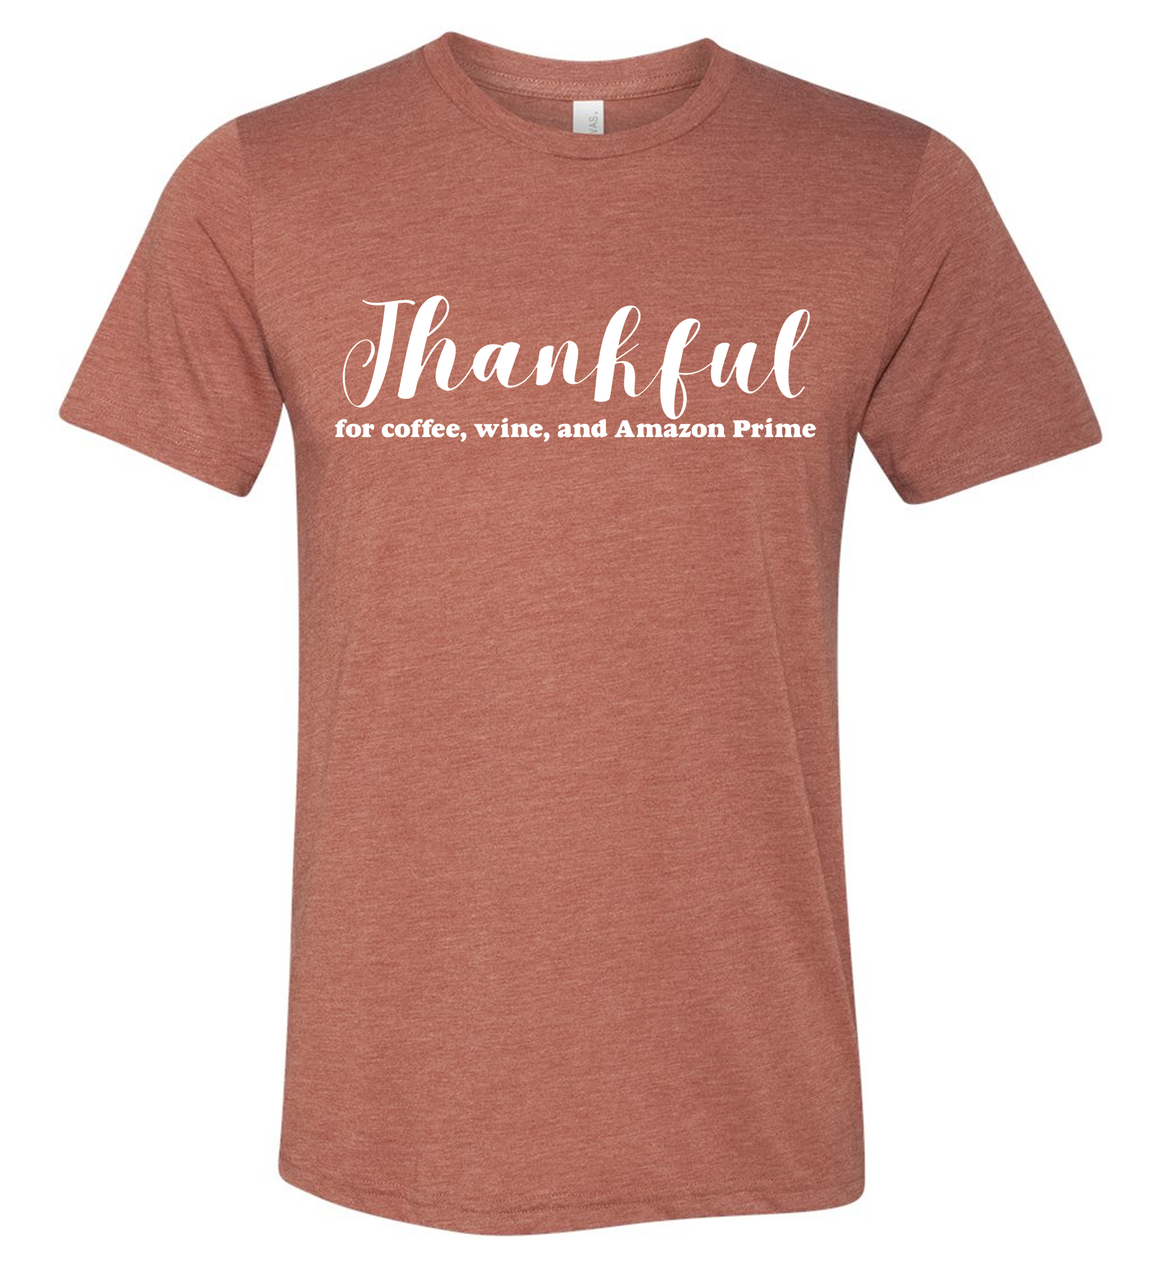 Thankful for Coffee, Wine, and Amazon Prime Unisex T-Shirt